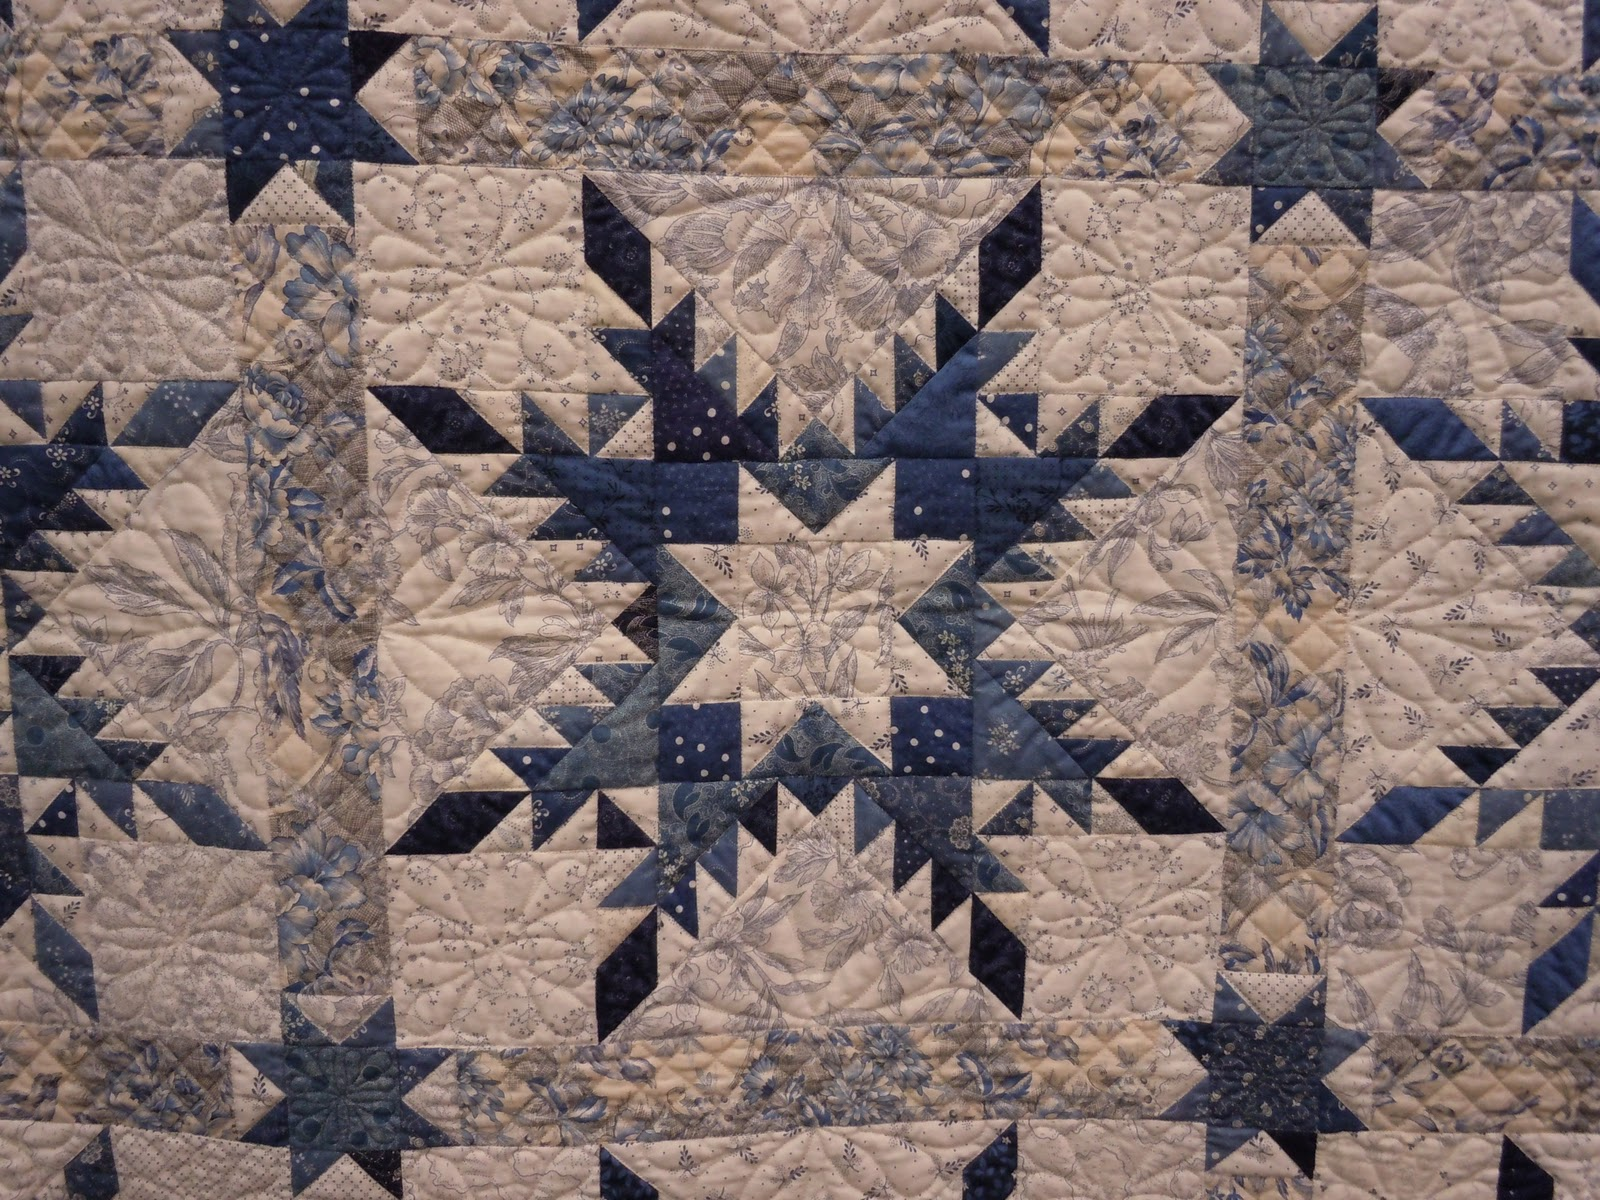 1 More Stitch: Feathered Stars by Marsha McCloskey : feathered star quilts - Adamdwight.com